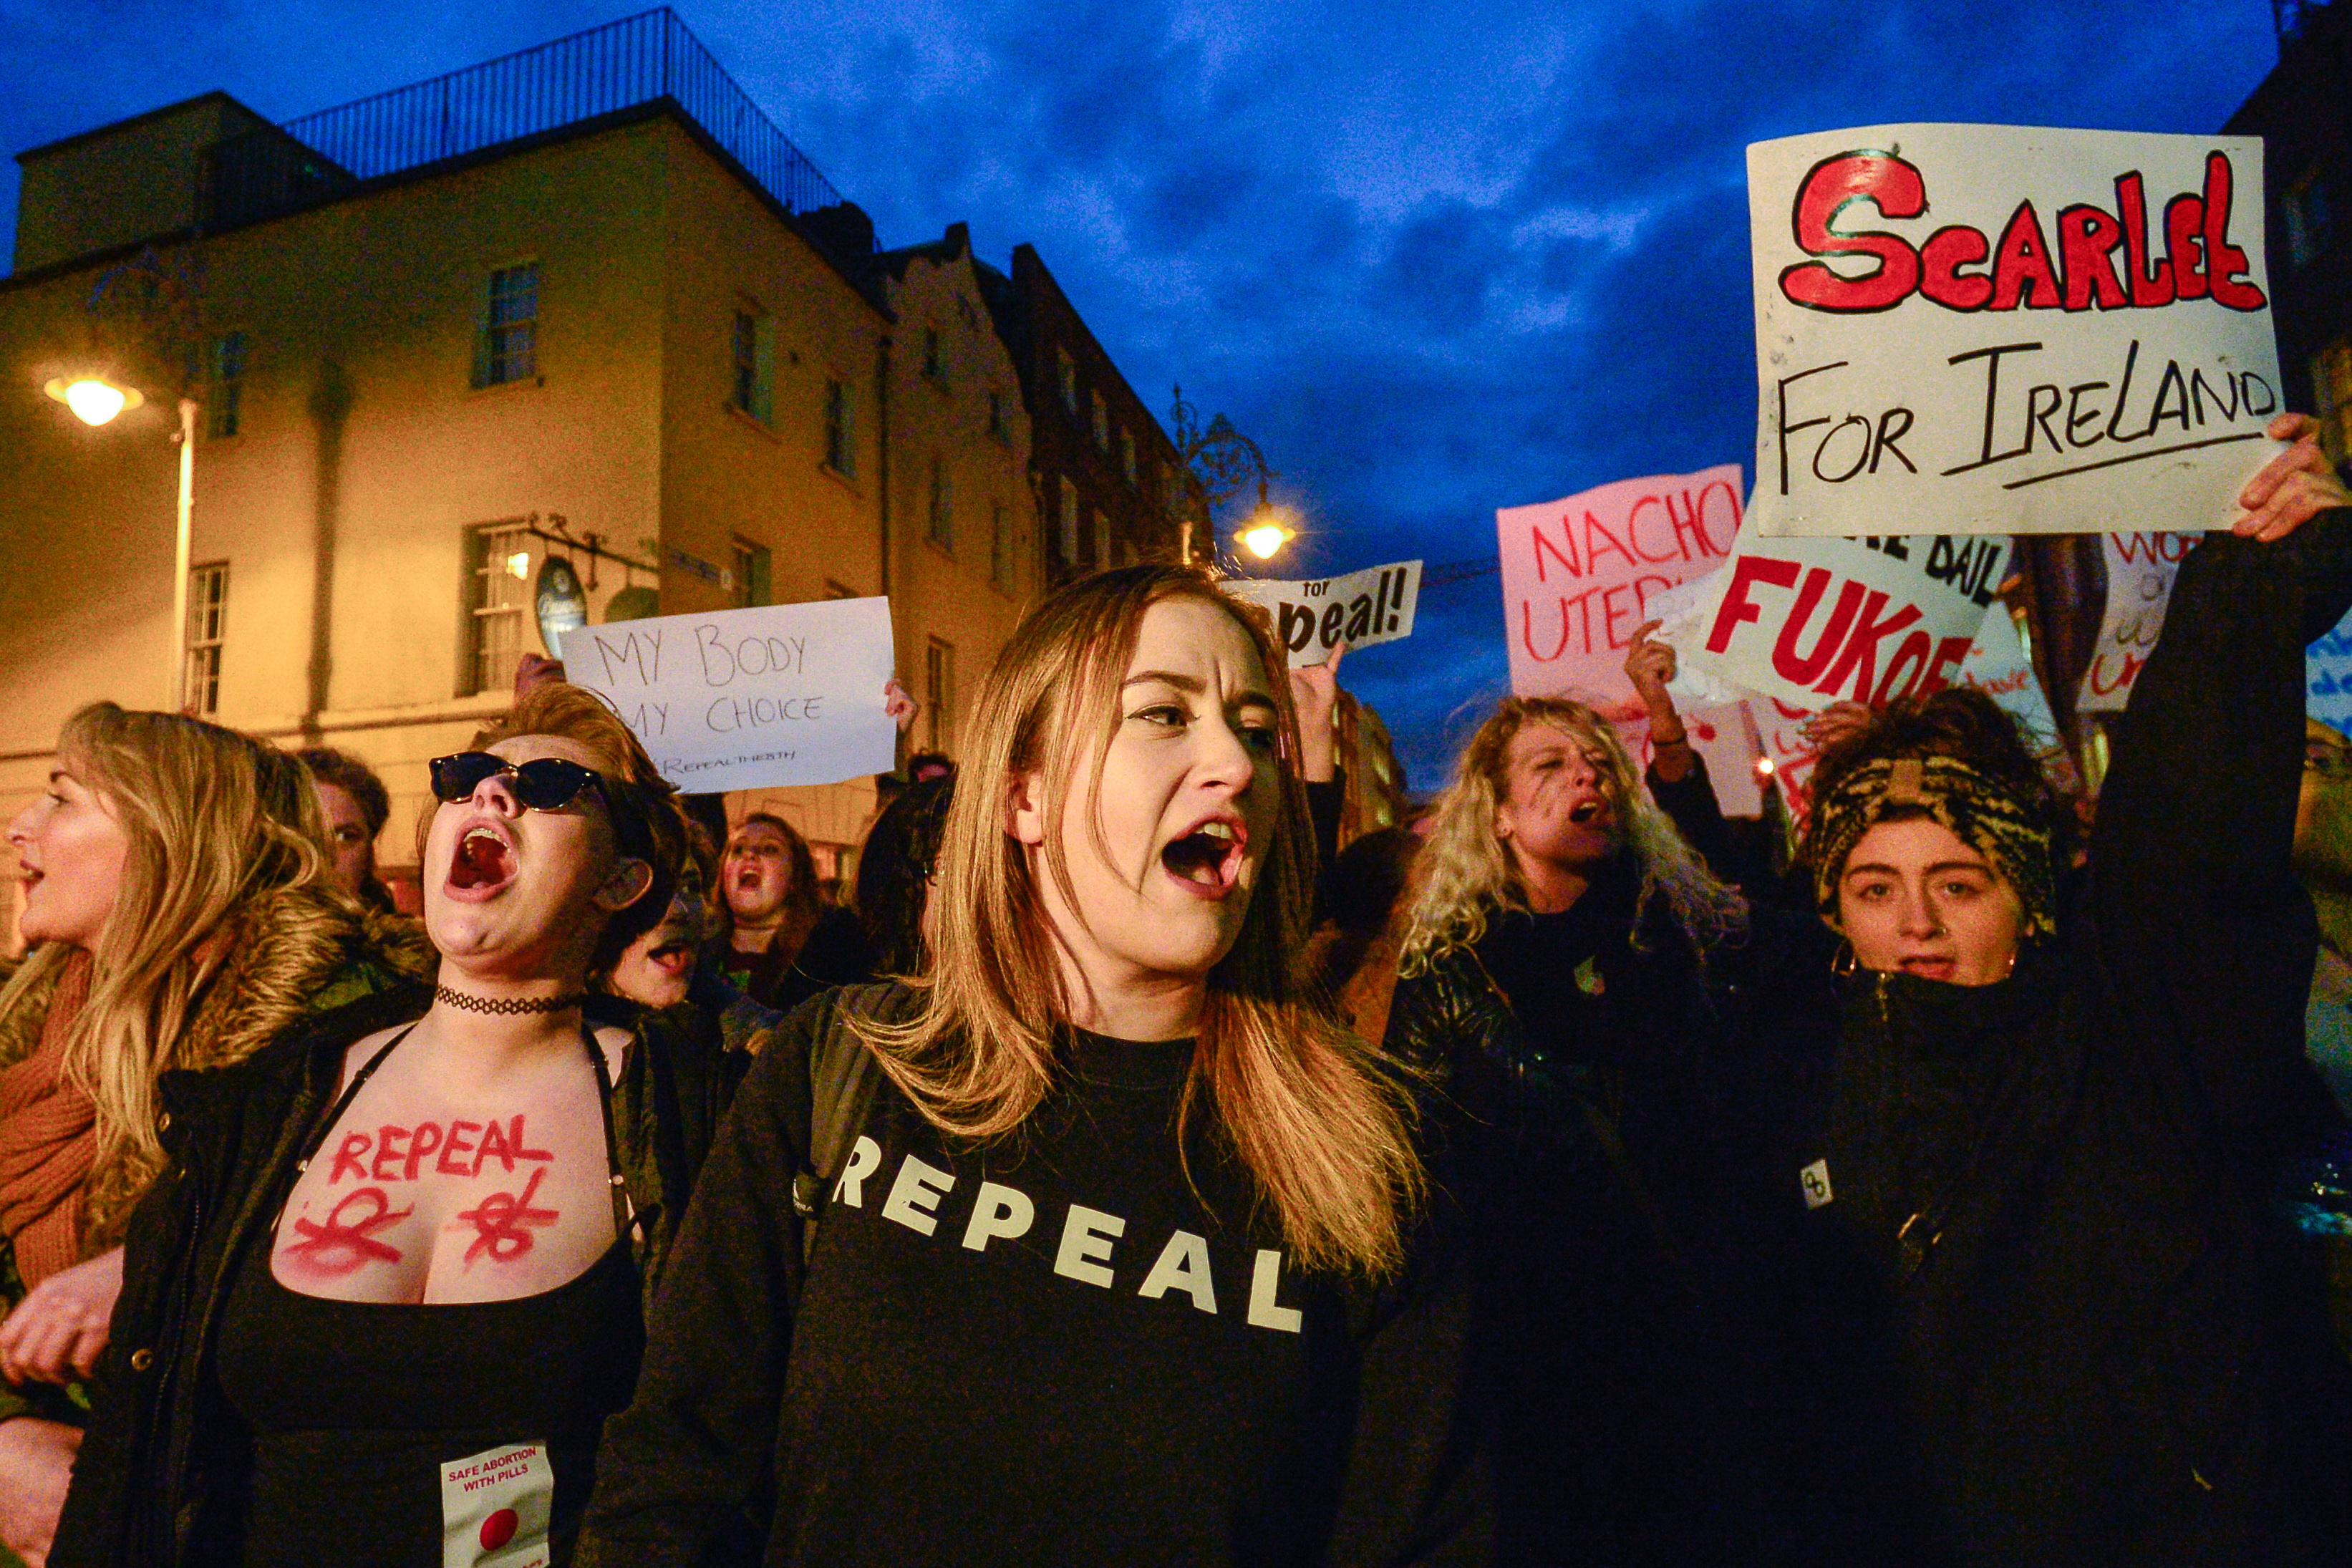 """A group of young women carry signs. In the foreground one wears a black """"Repeal"""" sweatshirt."""